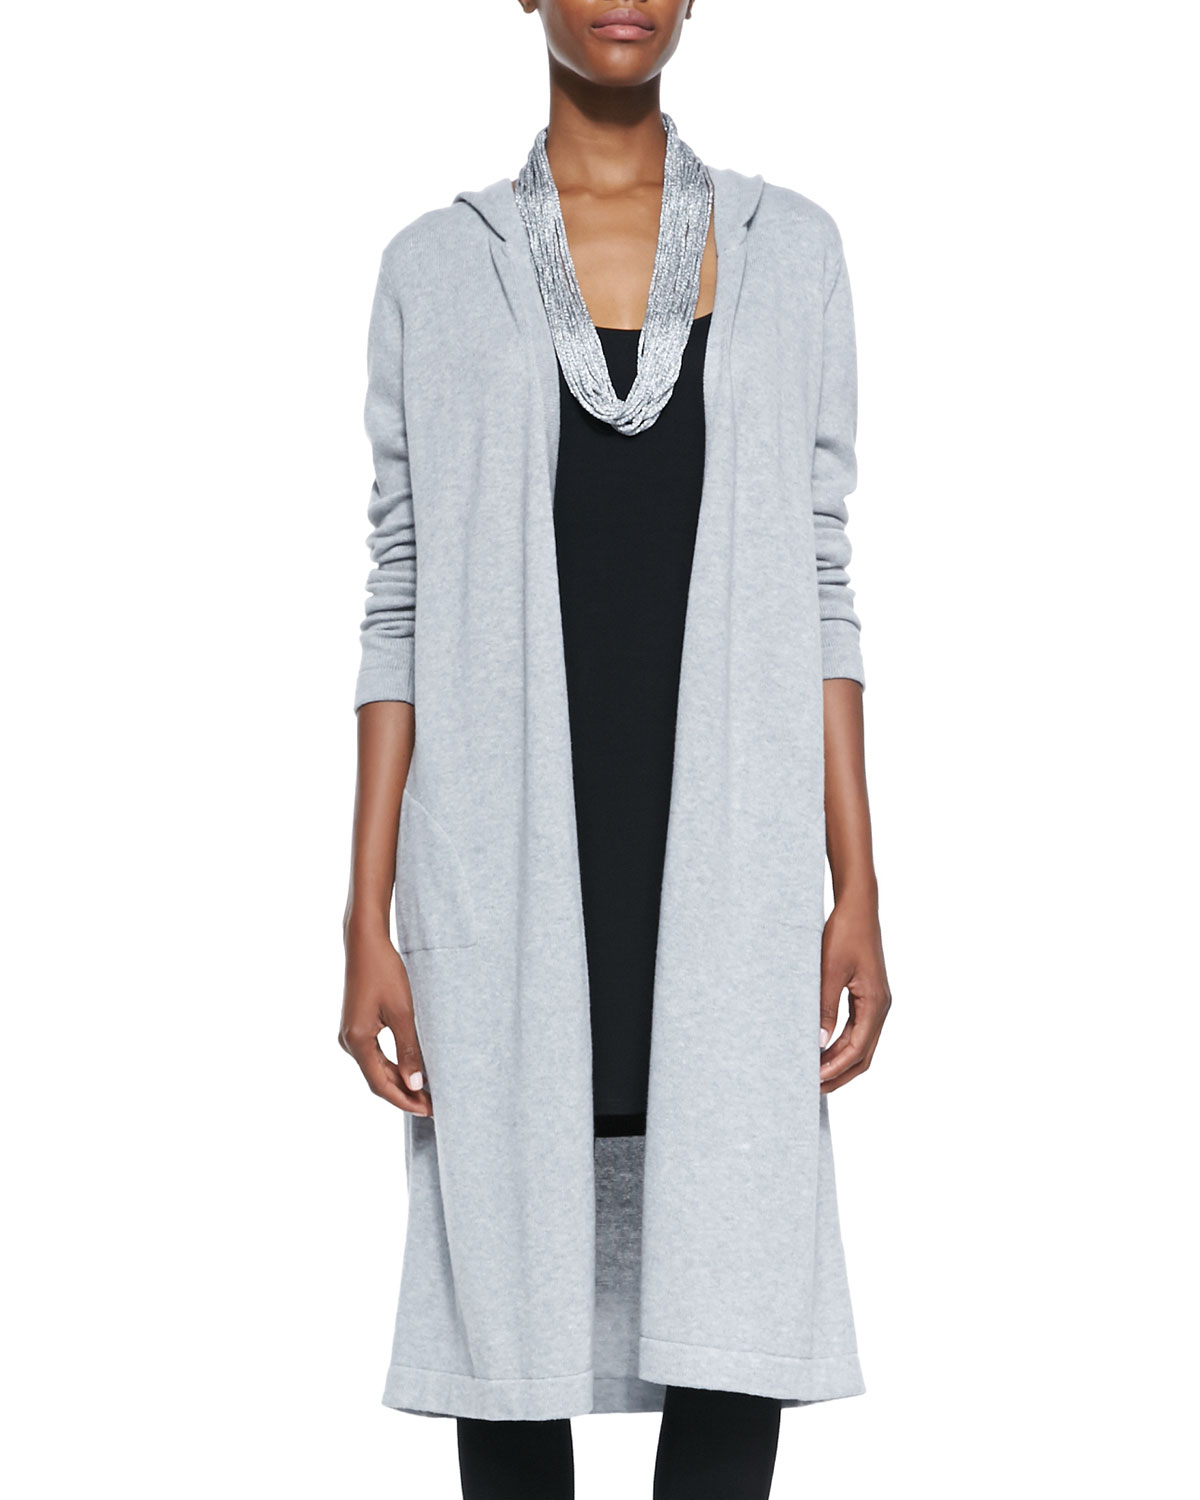 Eileen fisher Hooded Long Organic Cotton Cardigan in Blue   Lyst